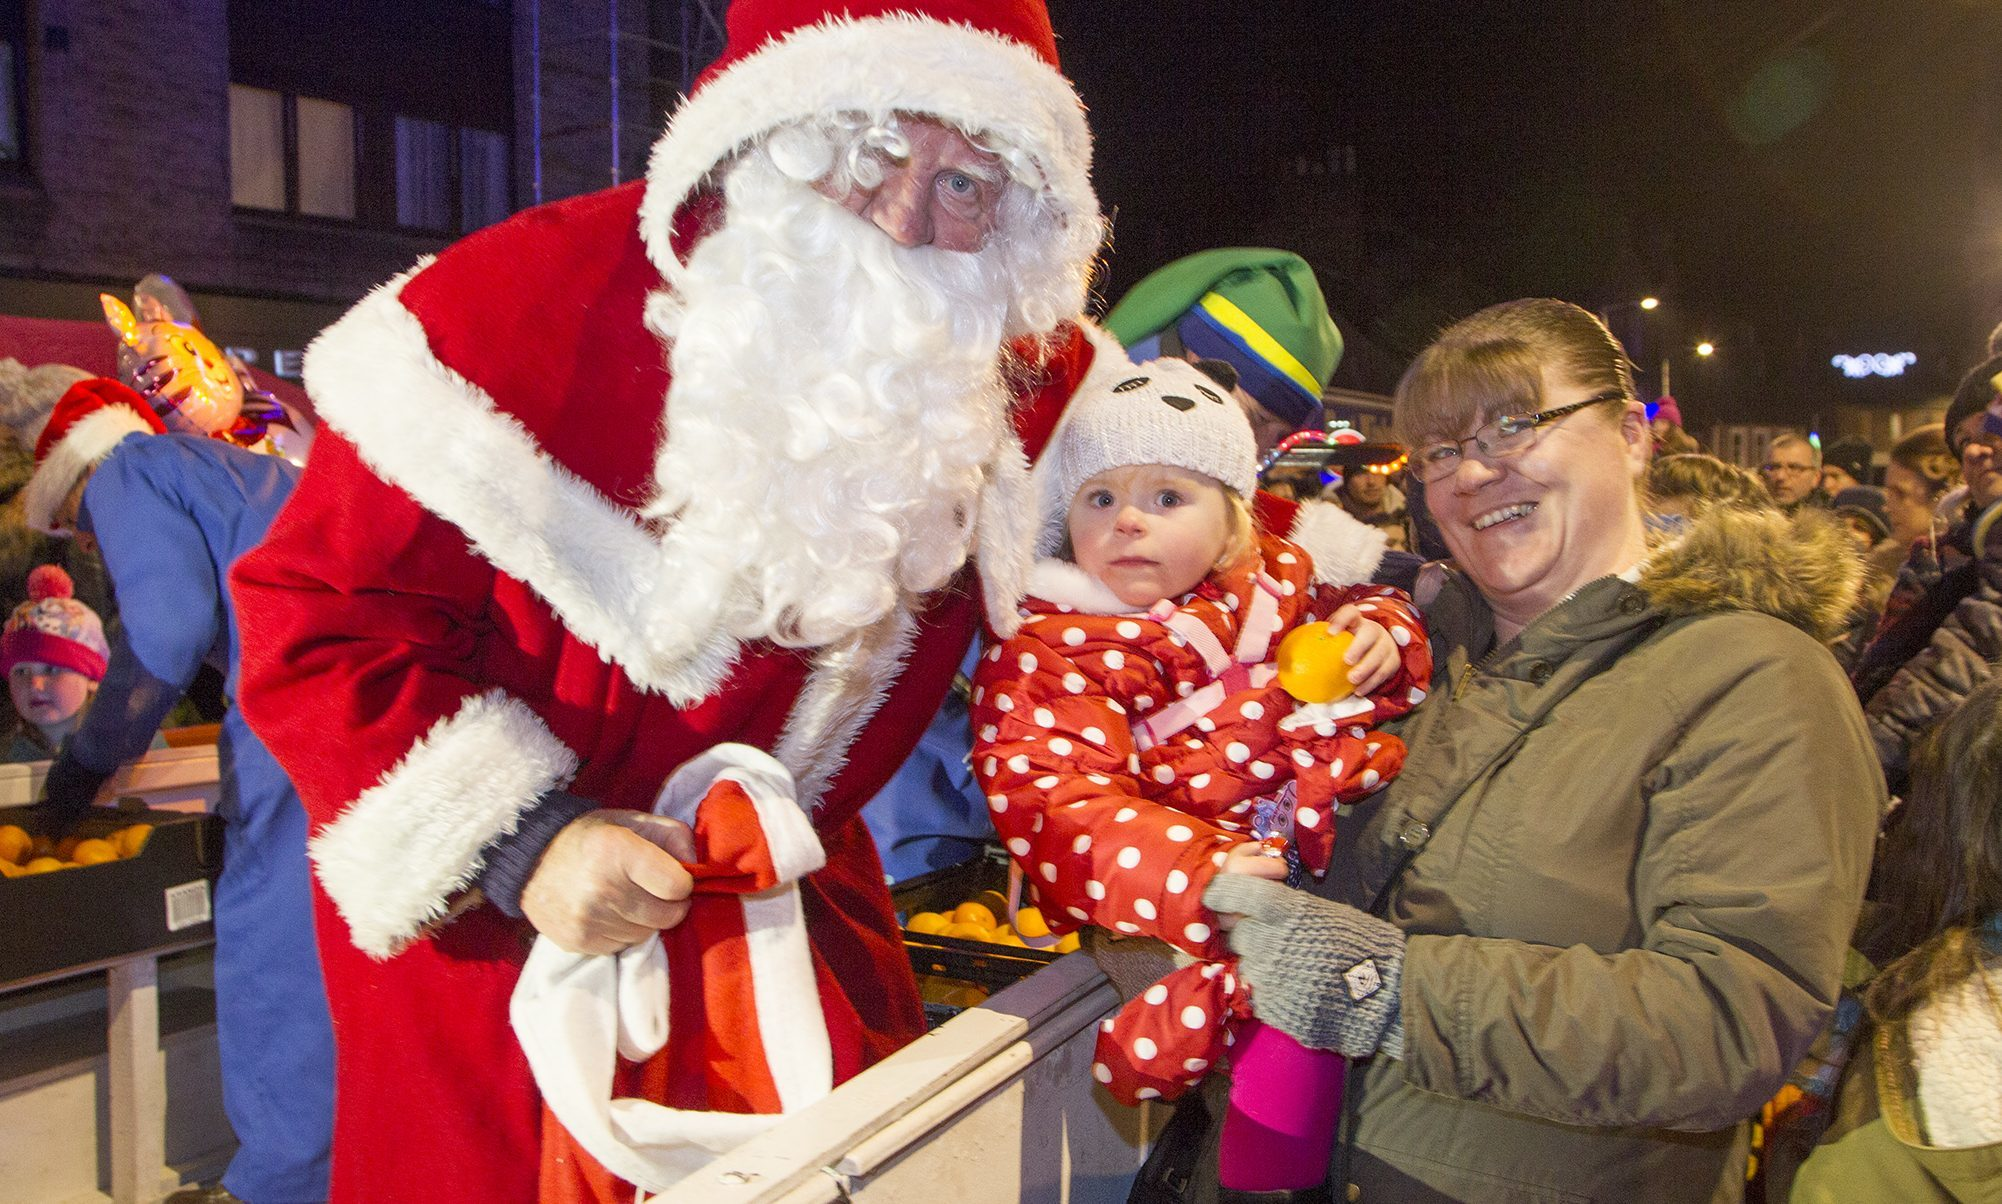 Santa meeting a young visitor at the 2016 Forfar Christmas lights switch-on.